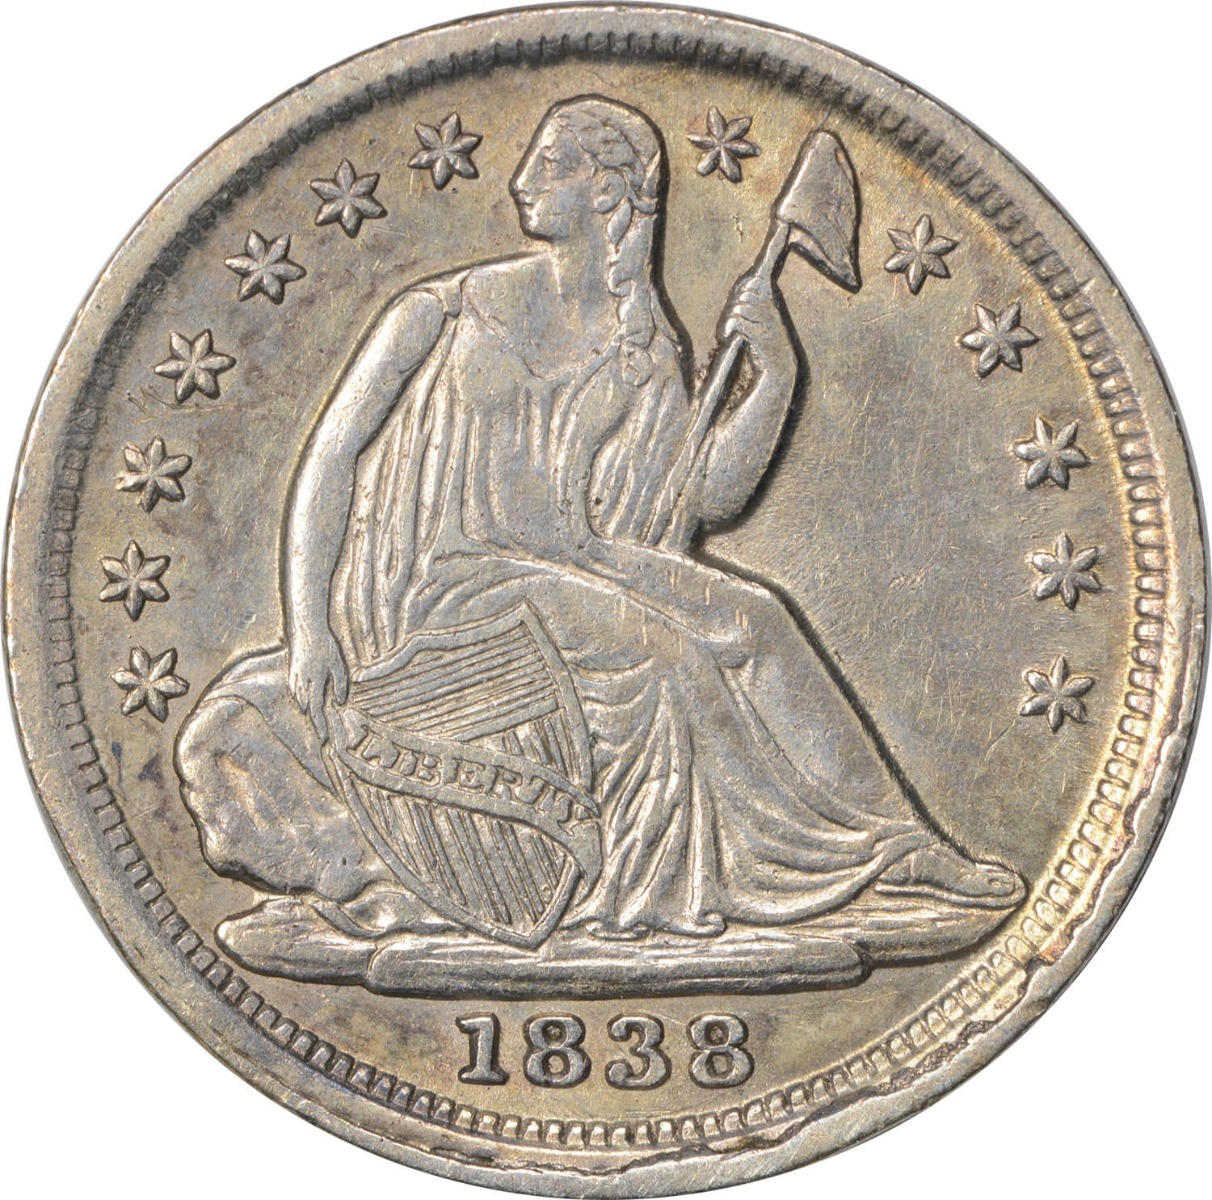 1838 Liberty Seated Silver Half Dime, No Drapery, Large Stars, AU, Uncertified